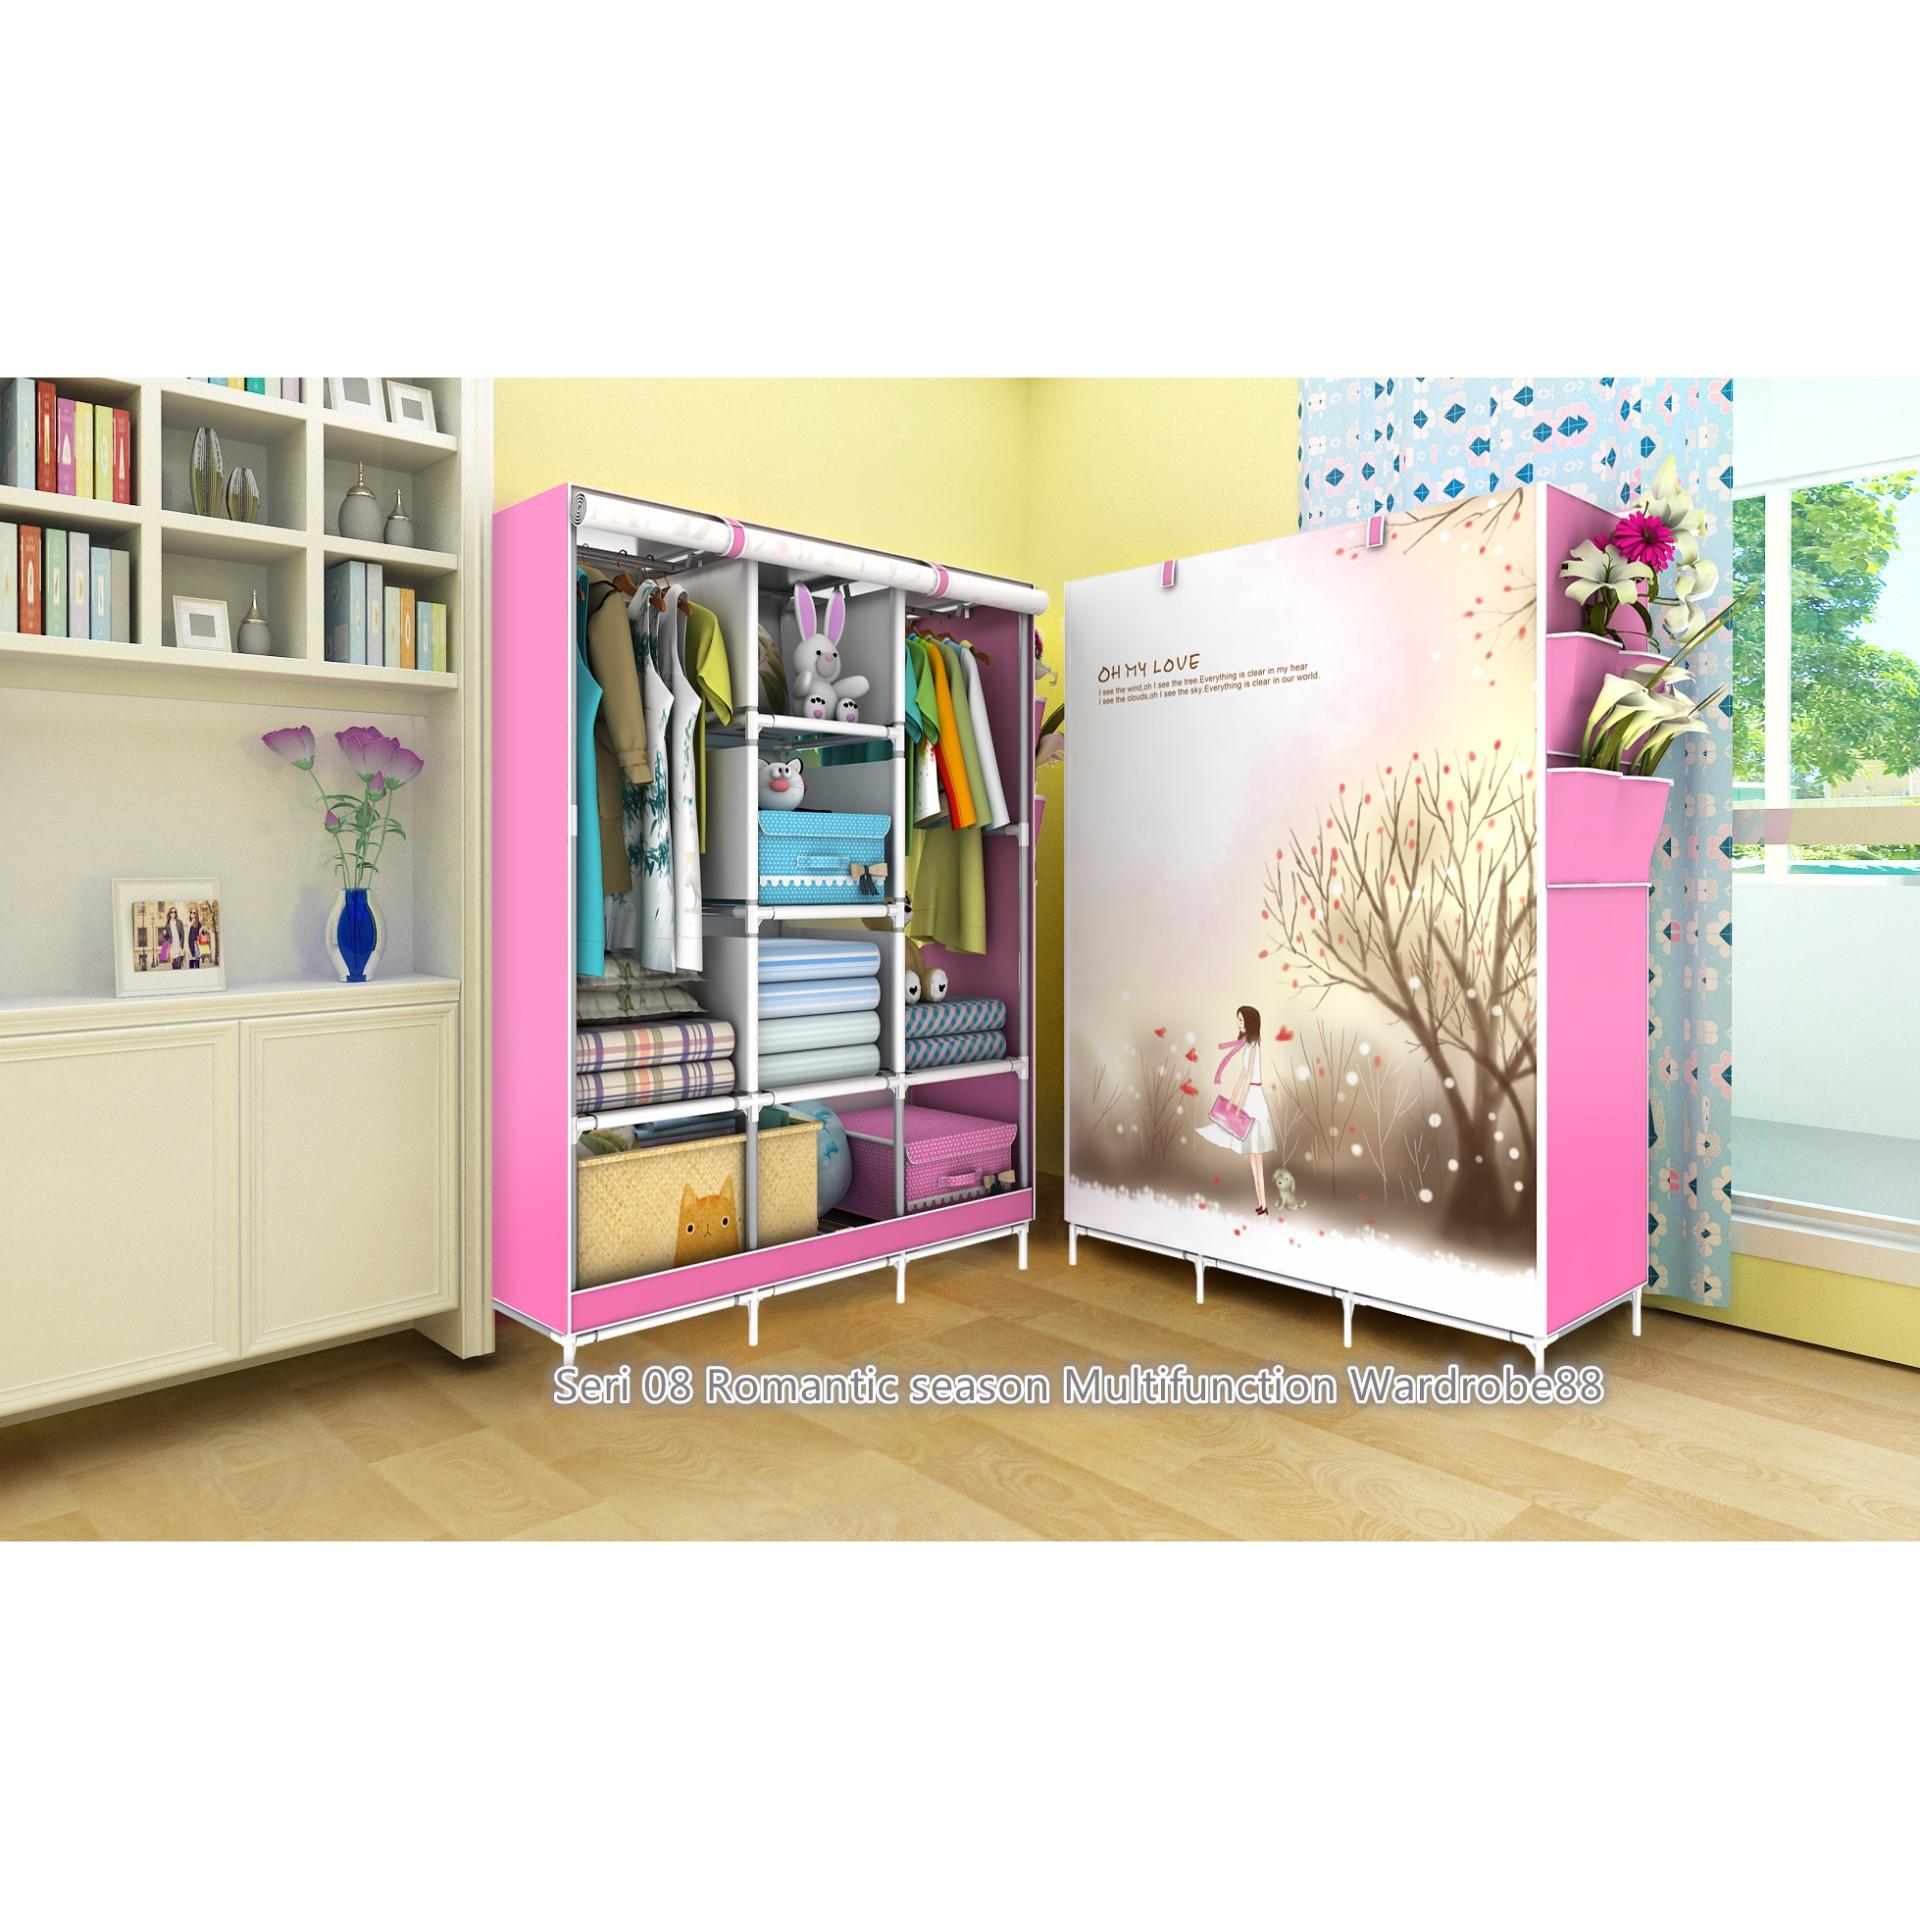 Terlaris 08 ROMANTIC SEASON Lemari pakaian Multifunction Wardrobe with cover